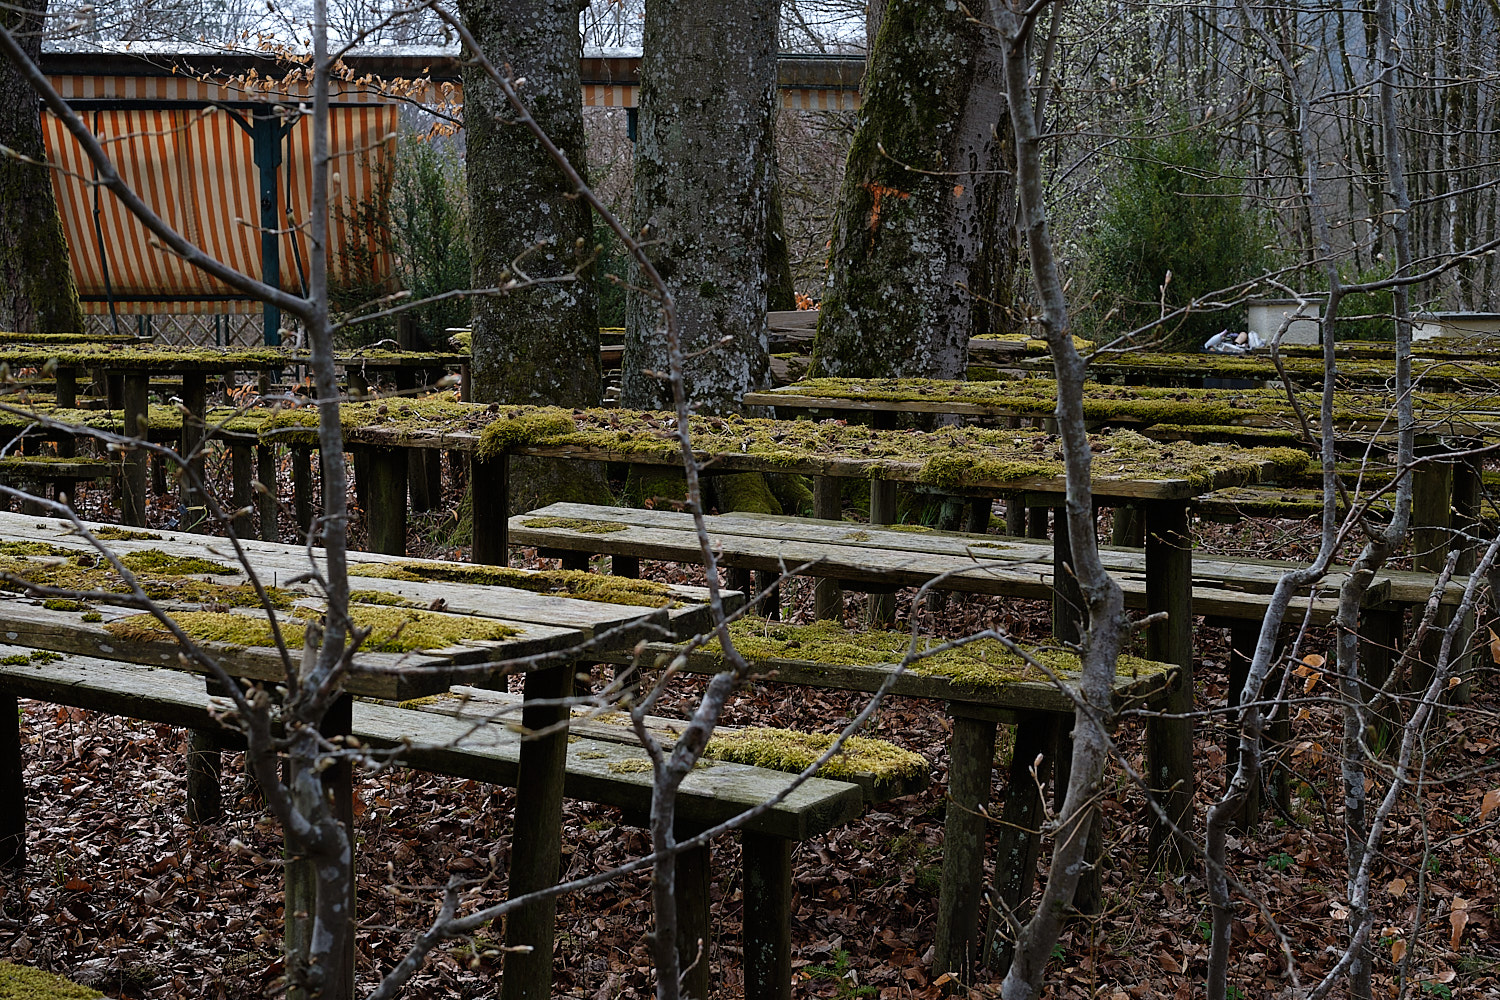 Once a Beergarden by Lautstettener Moos